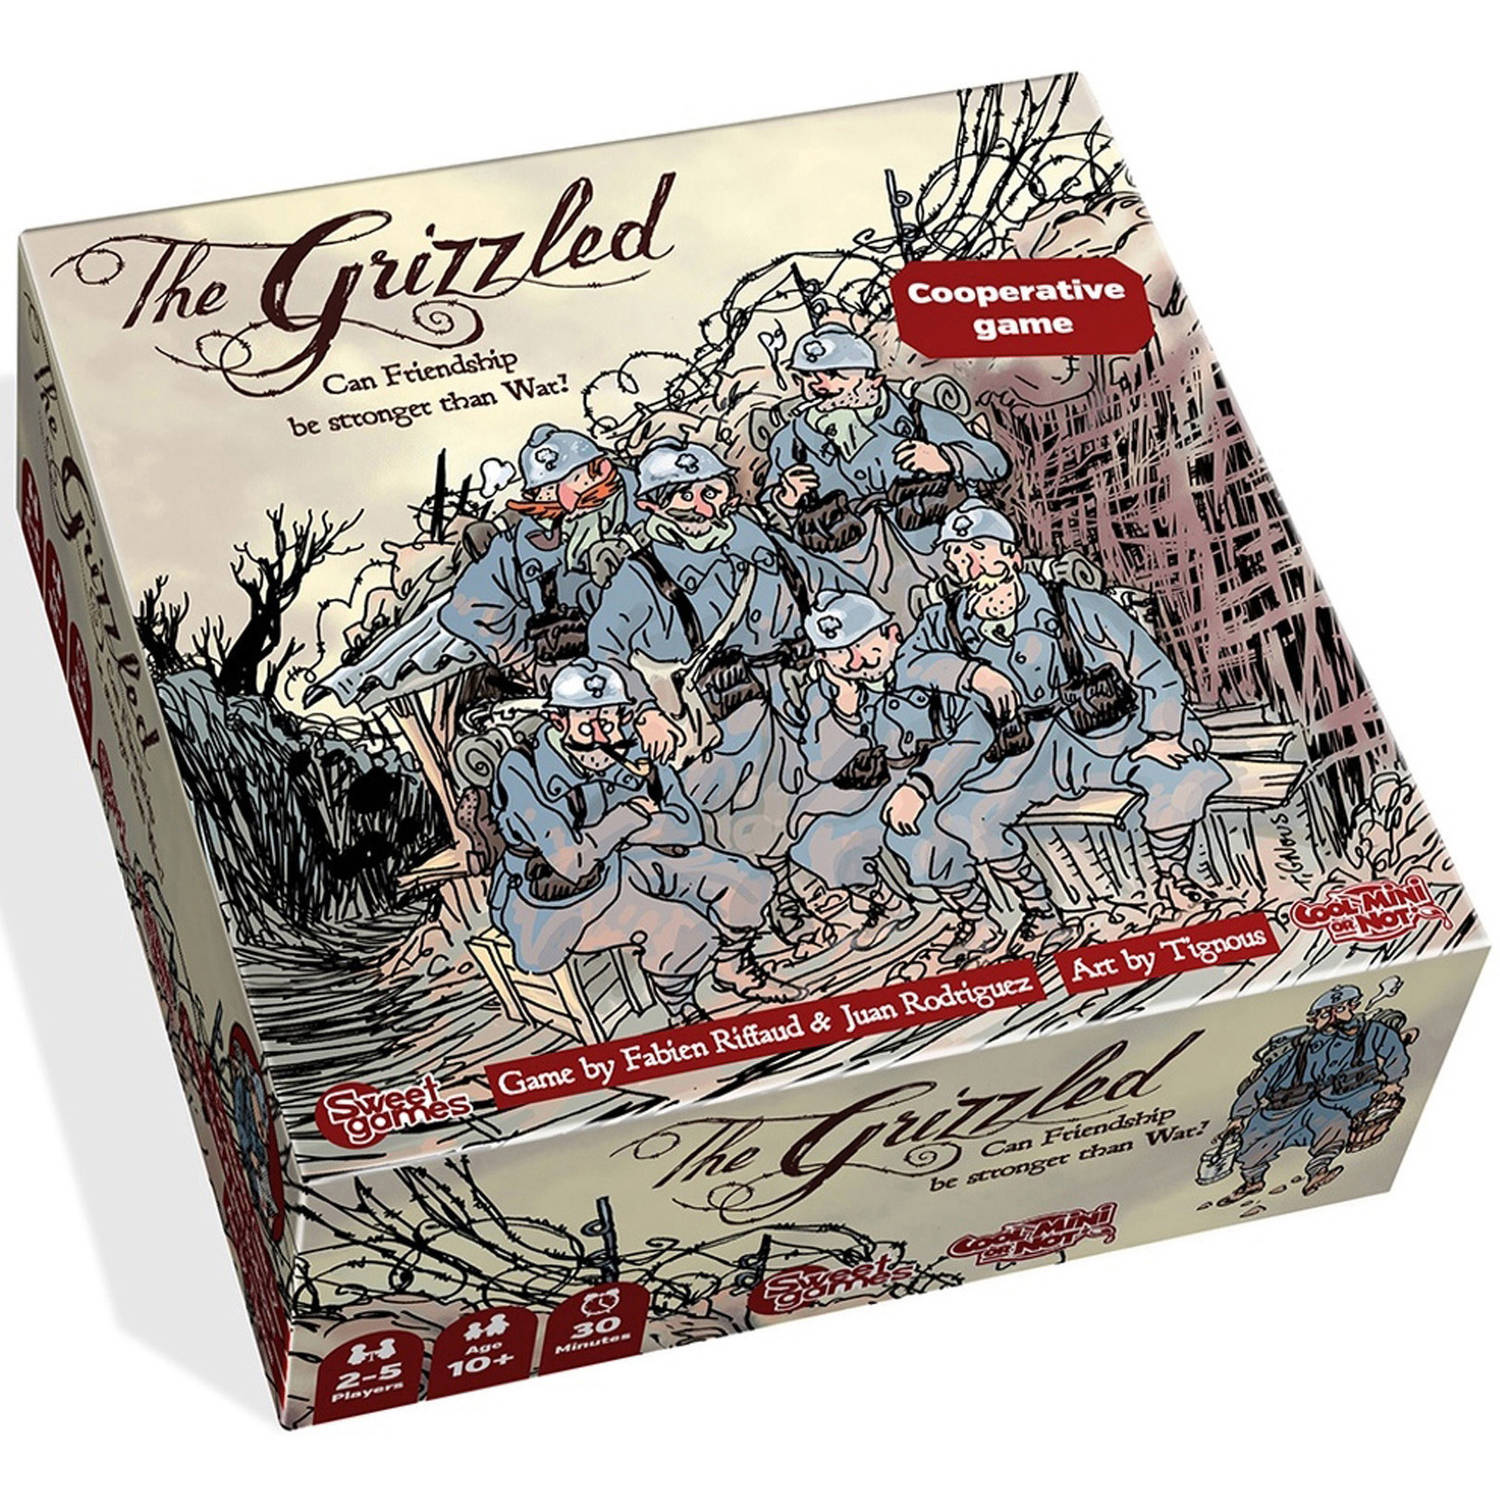 Cool Mini Or Not The Grizzled Board Game